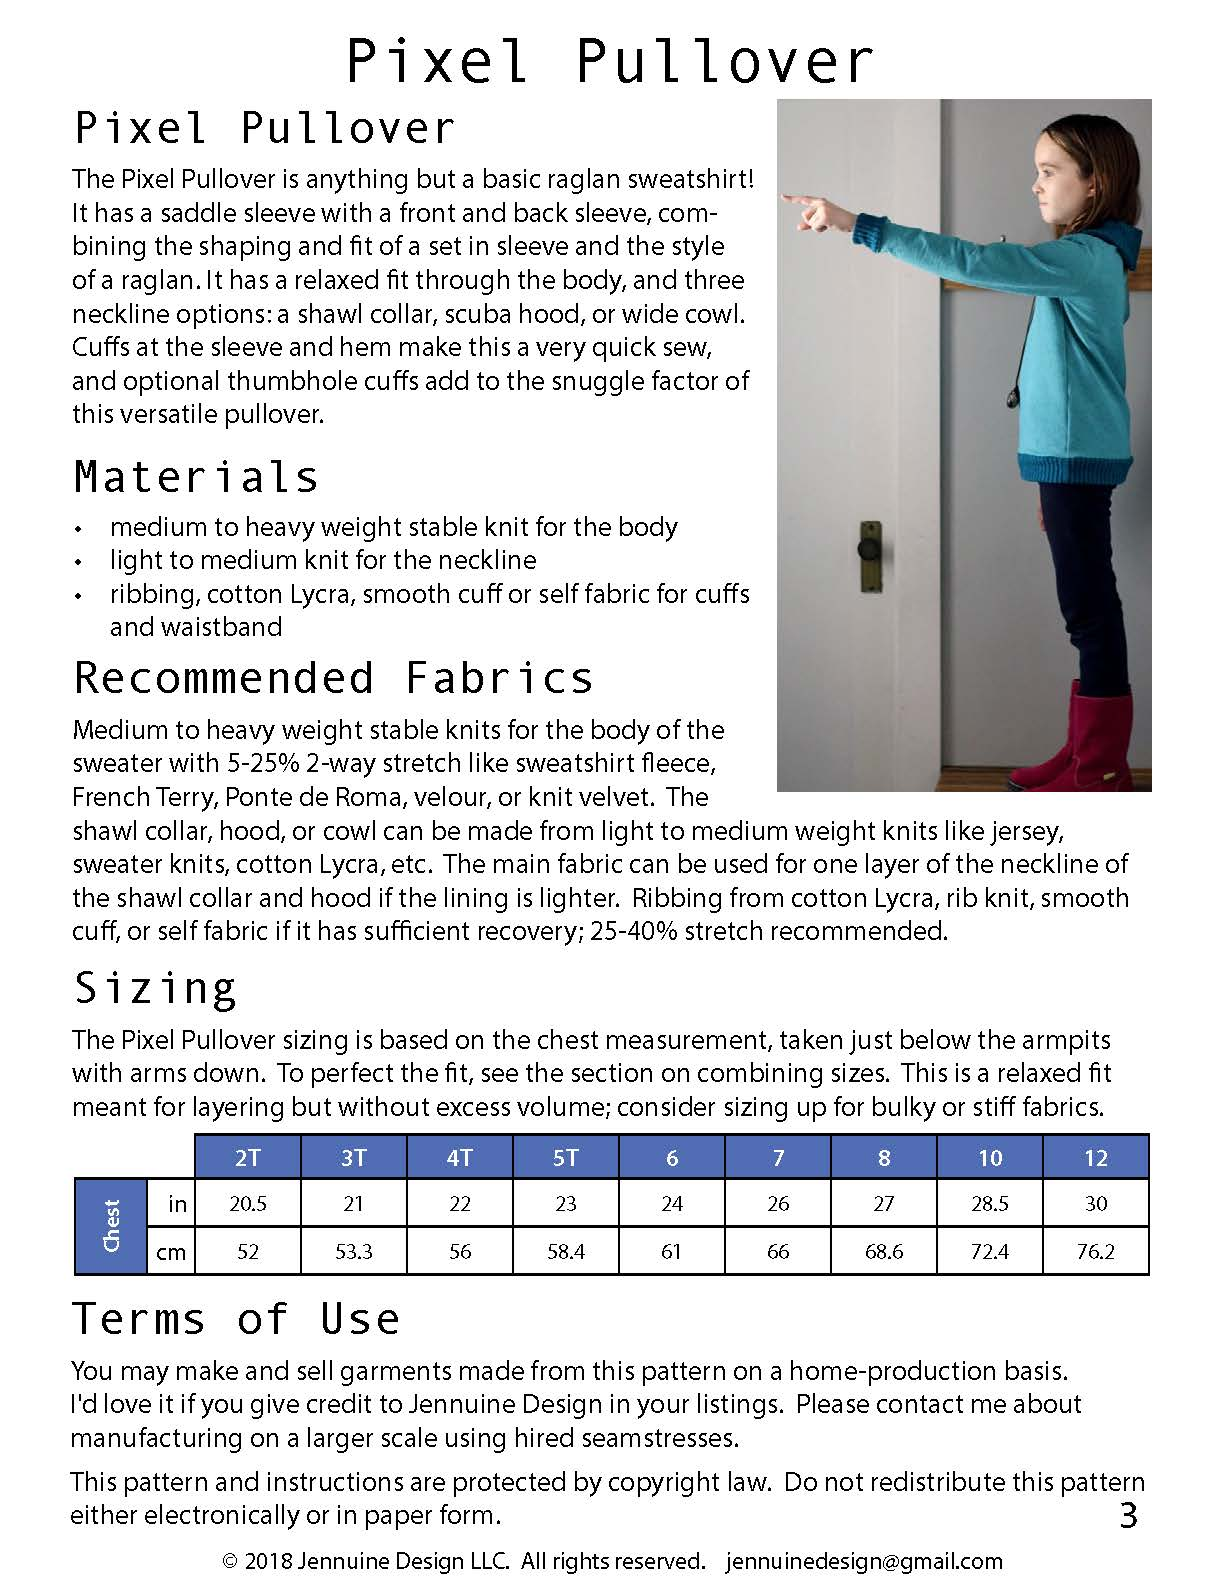 Pixel Pullover Jennuine Design recommended fabrics & sizing